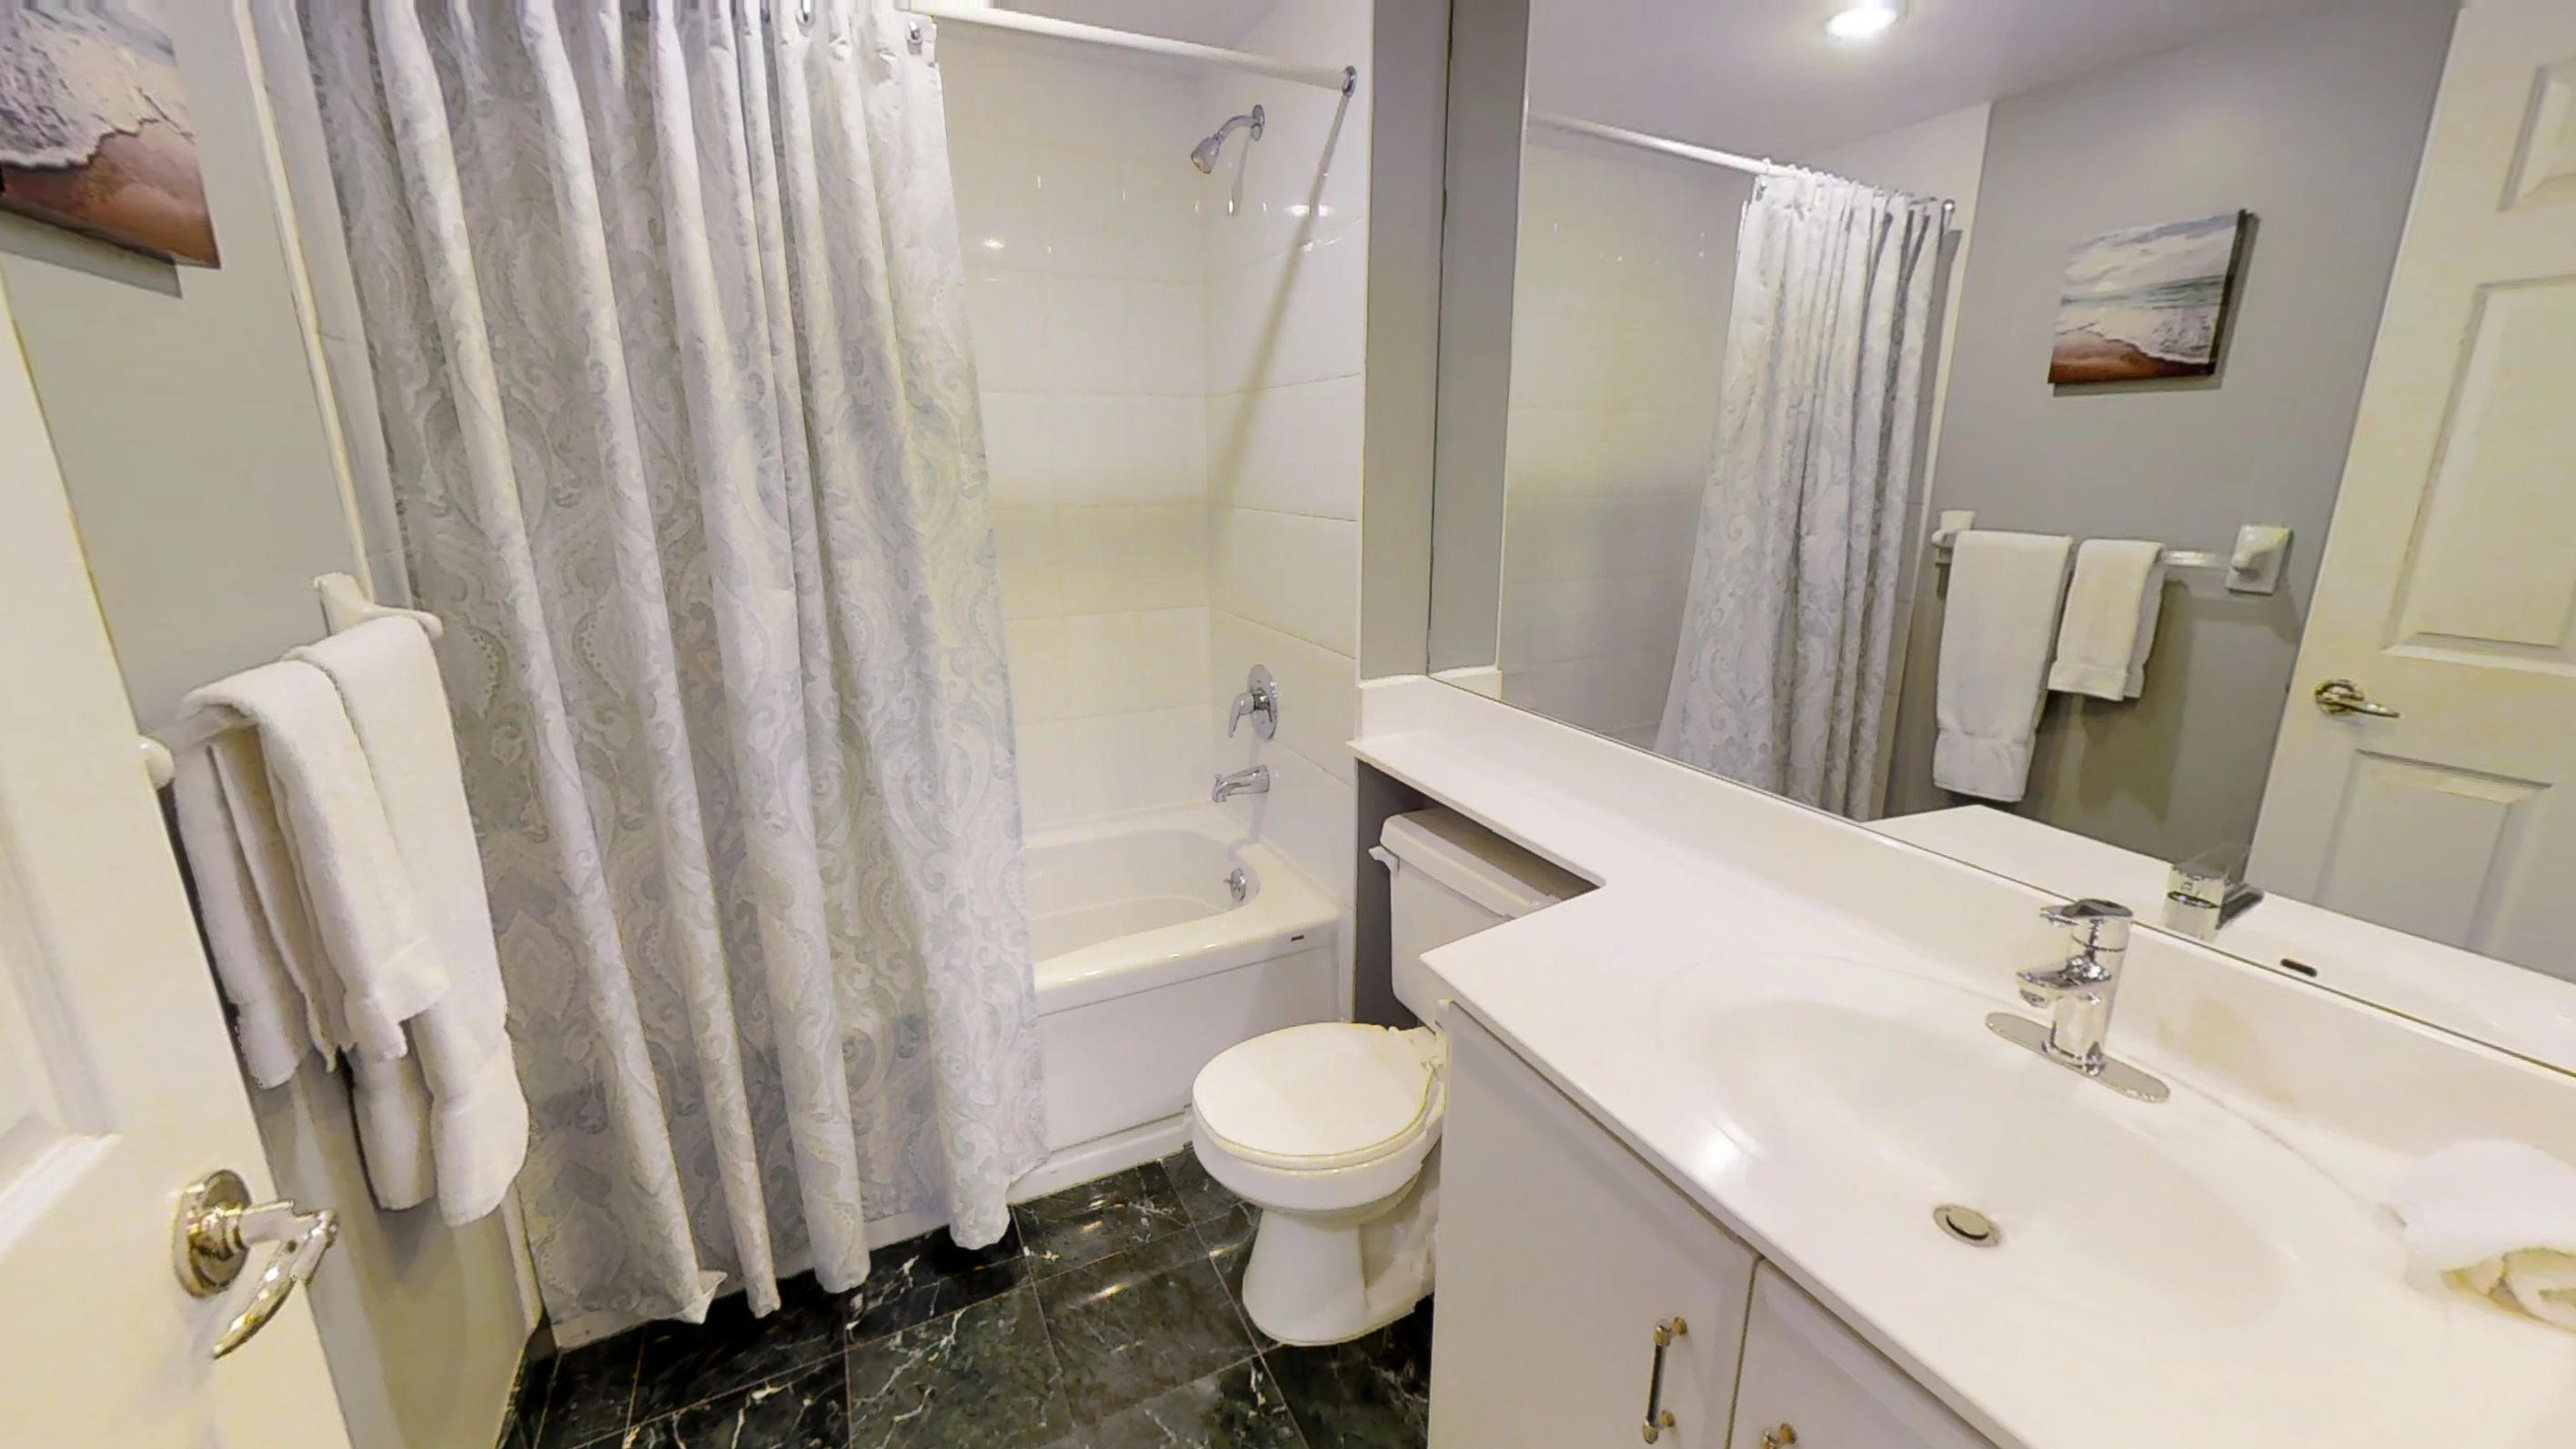 Furnished bathroom in a one bedroom furnished apartment in Qwest